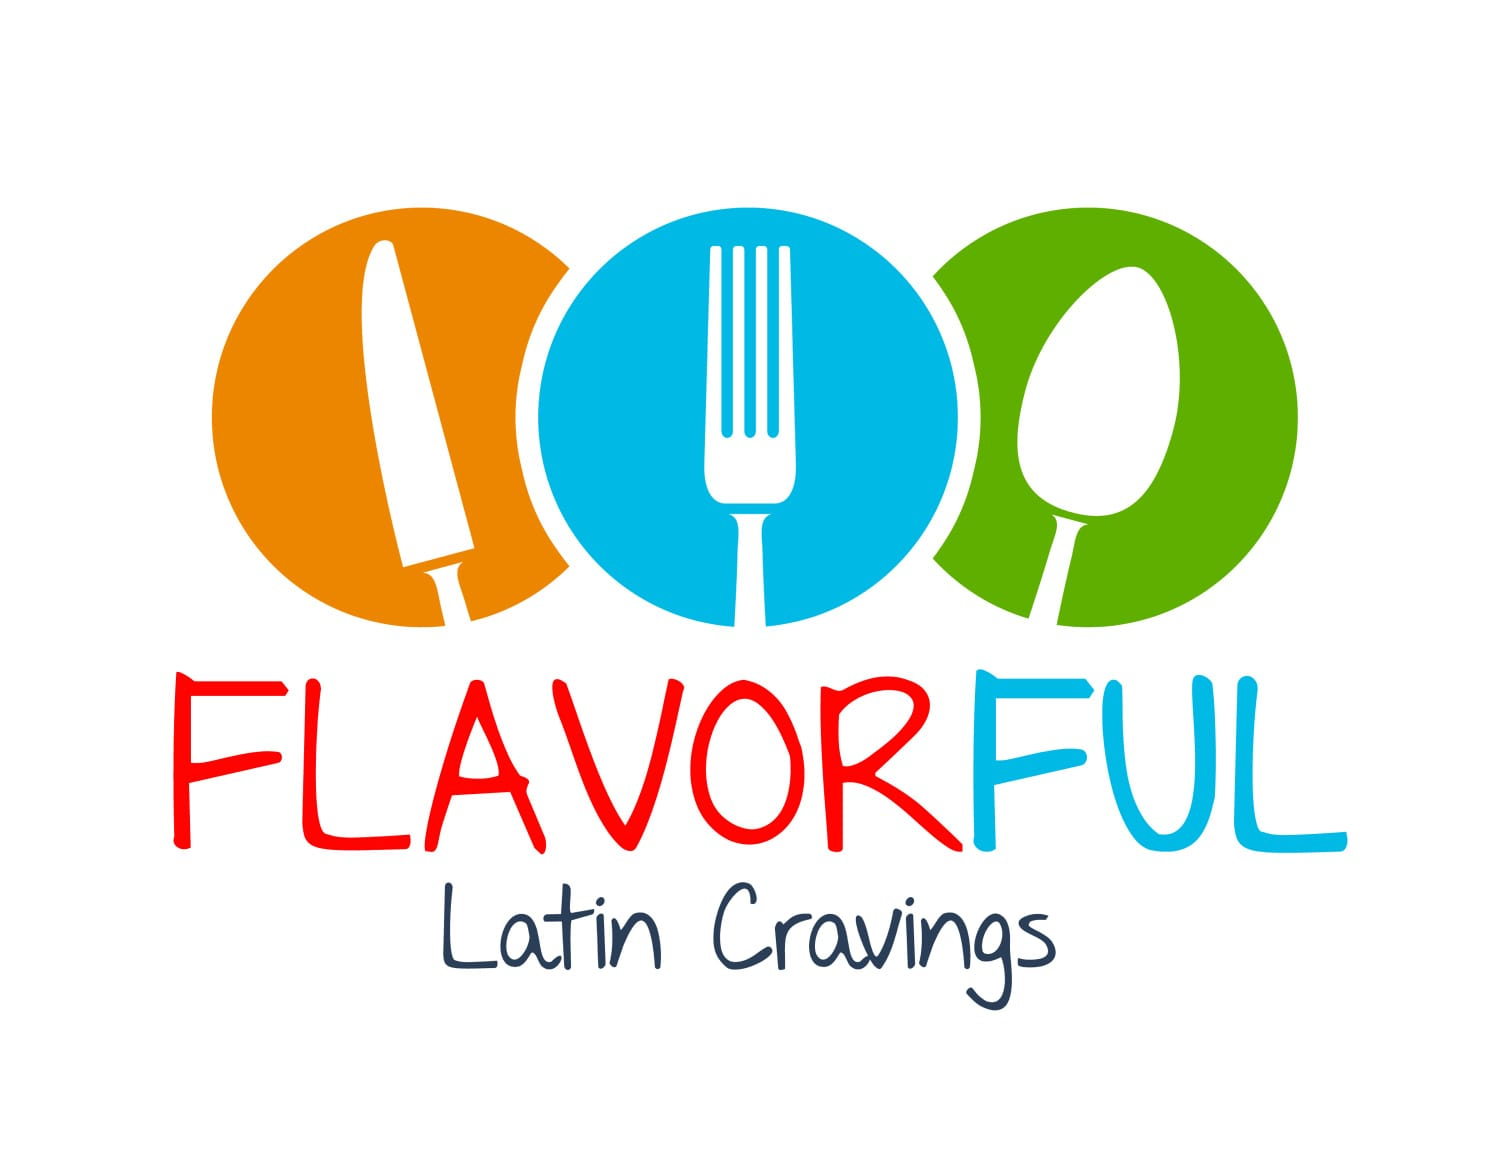 Flavorful Latin Cravings